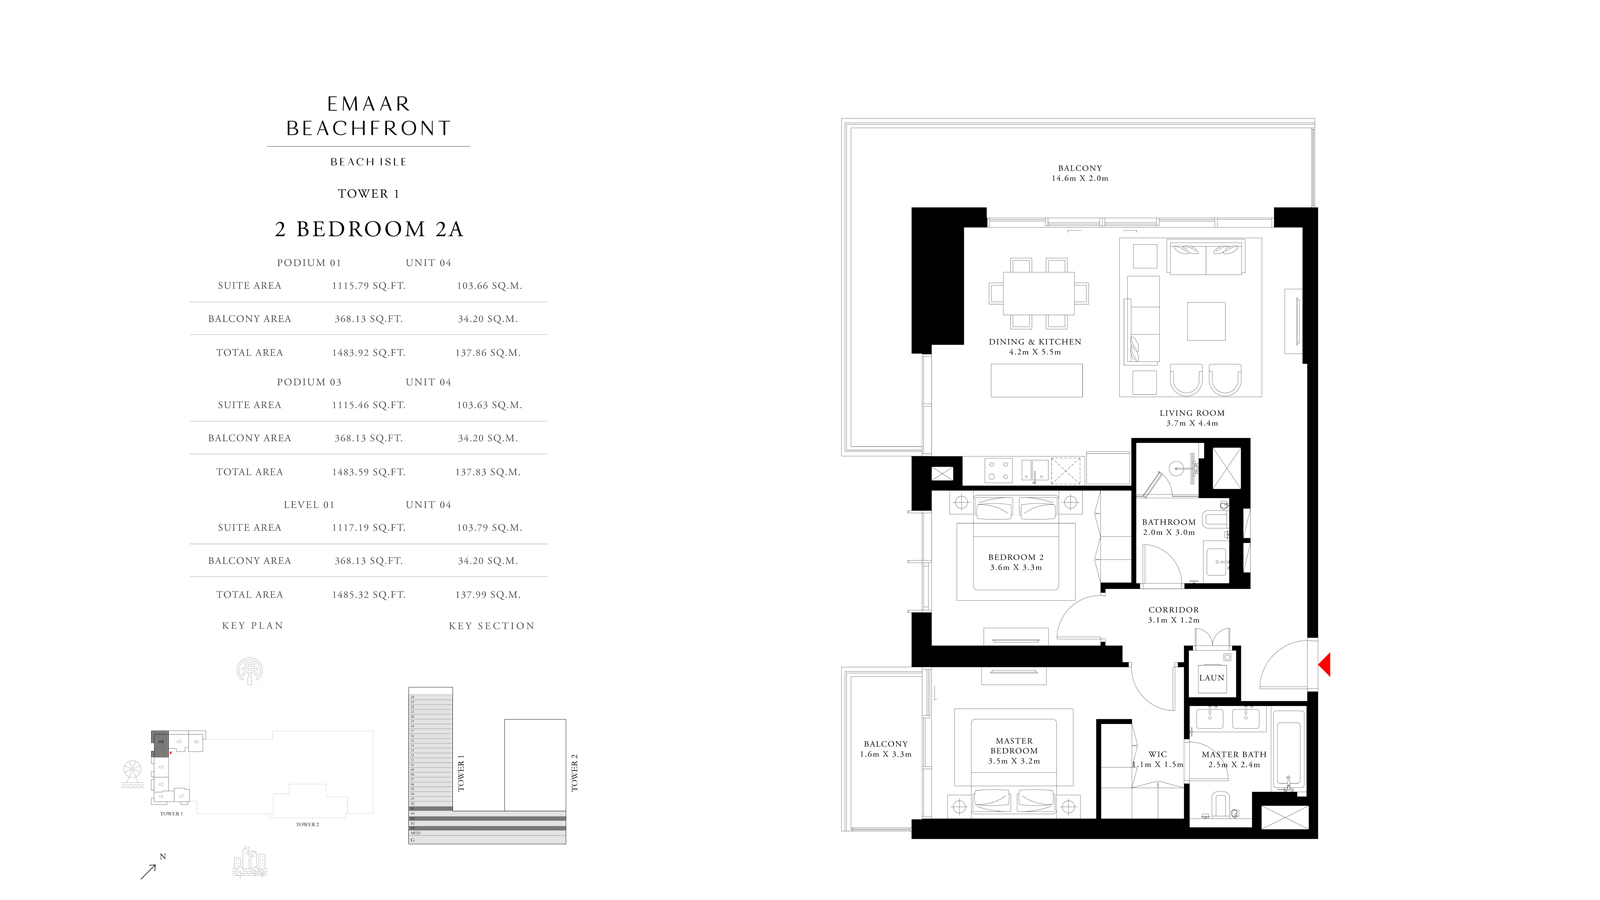 2 Bedroom 2A Tower 1, Size 1485    sq. ft.